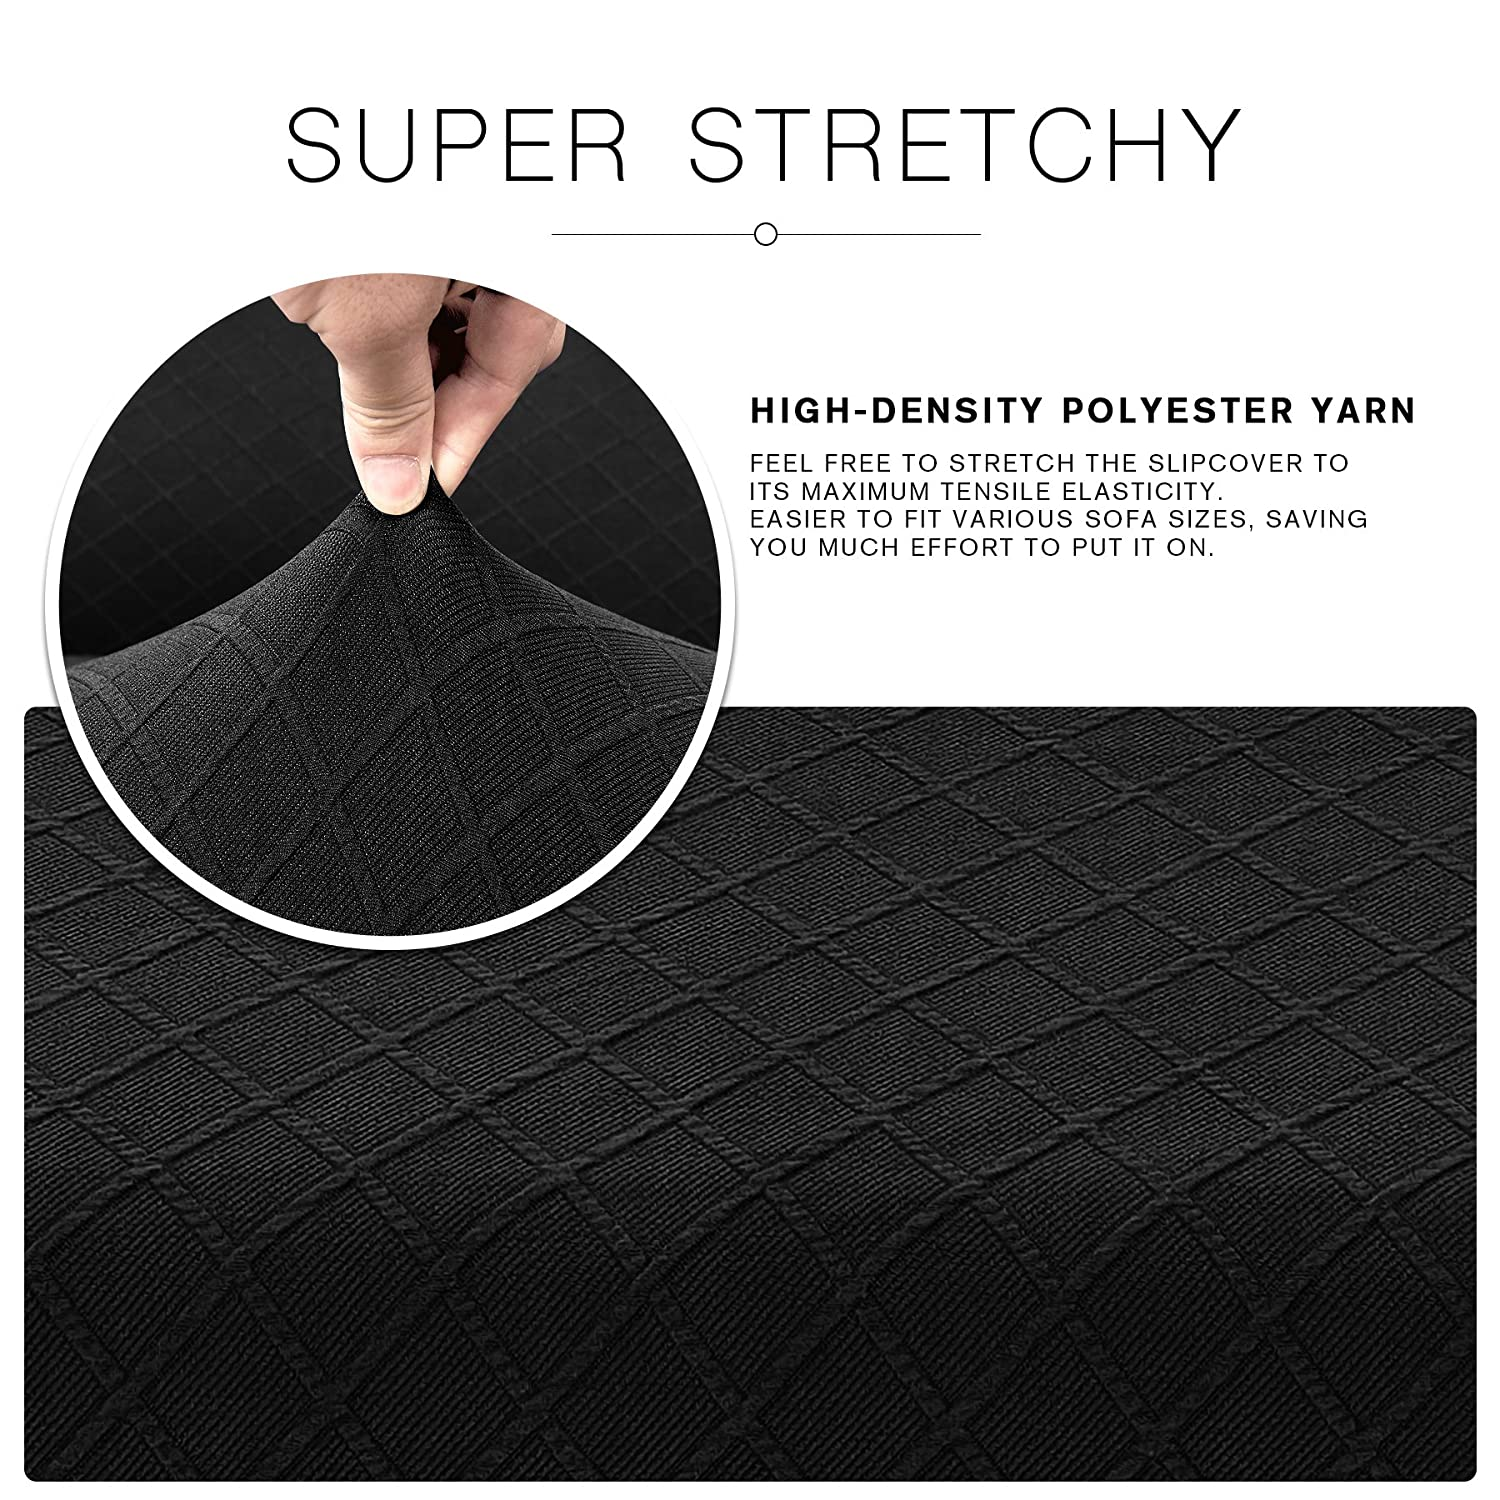 CHUN YI Stretch Polyester and Spandex Rhombus Cushion Slipcovers Multi-Purpose Couch Chair Seat Cushion Cover for 1-Seater Cushion (Black, Chair ...